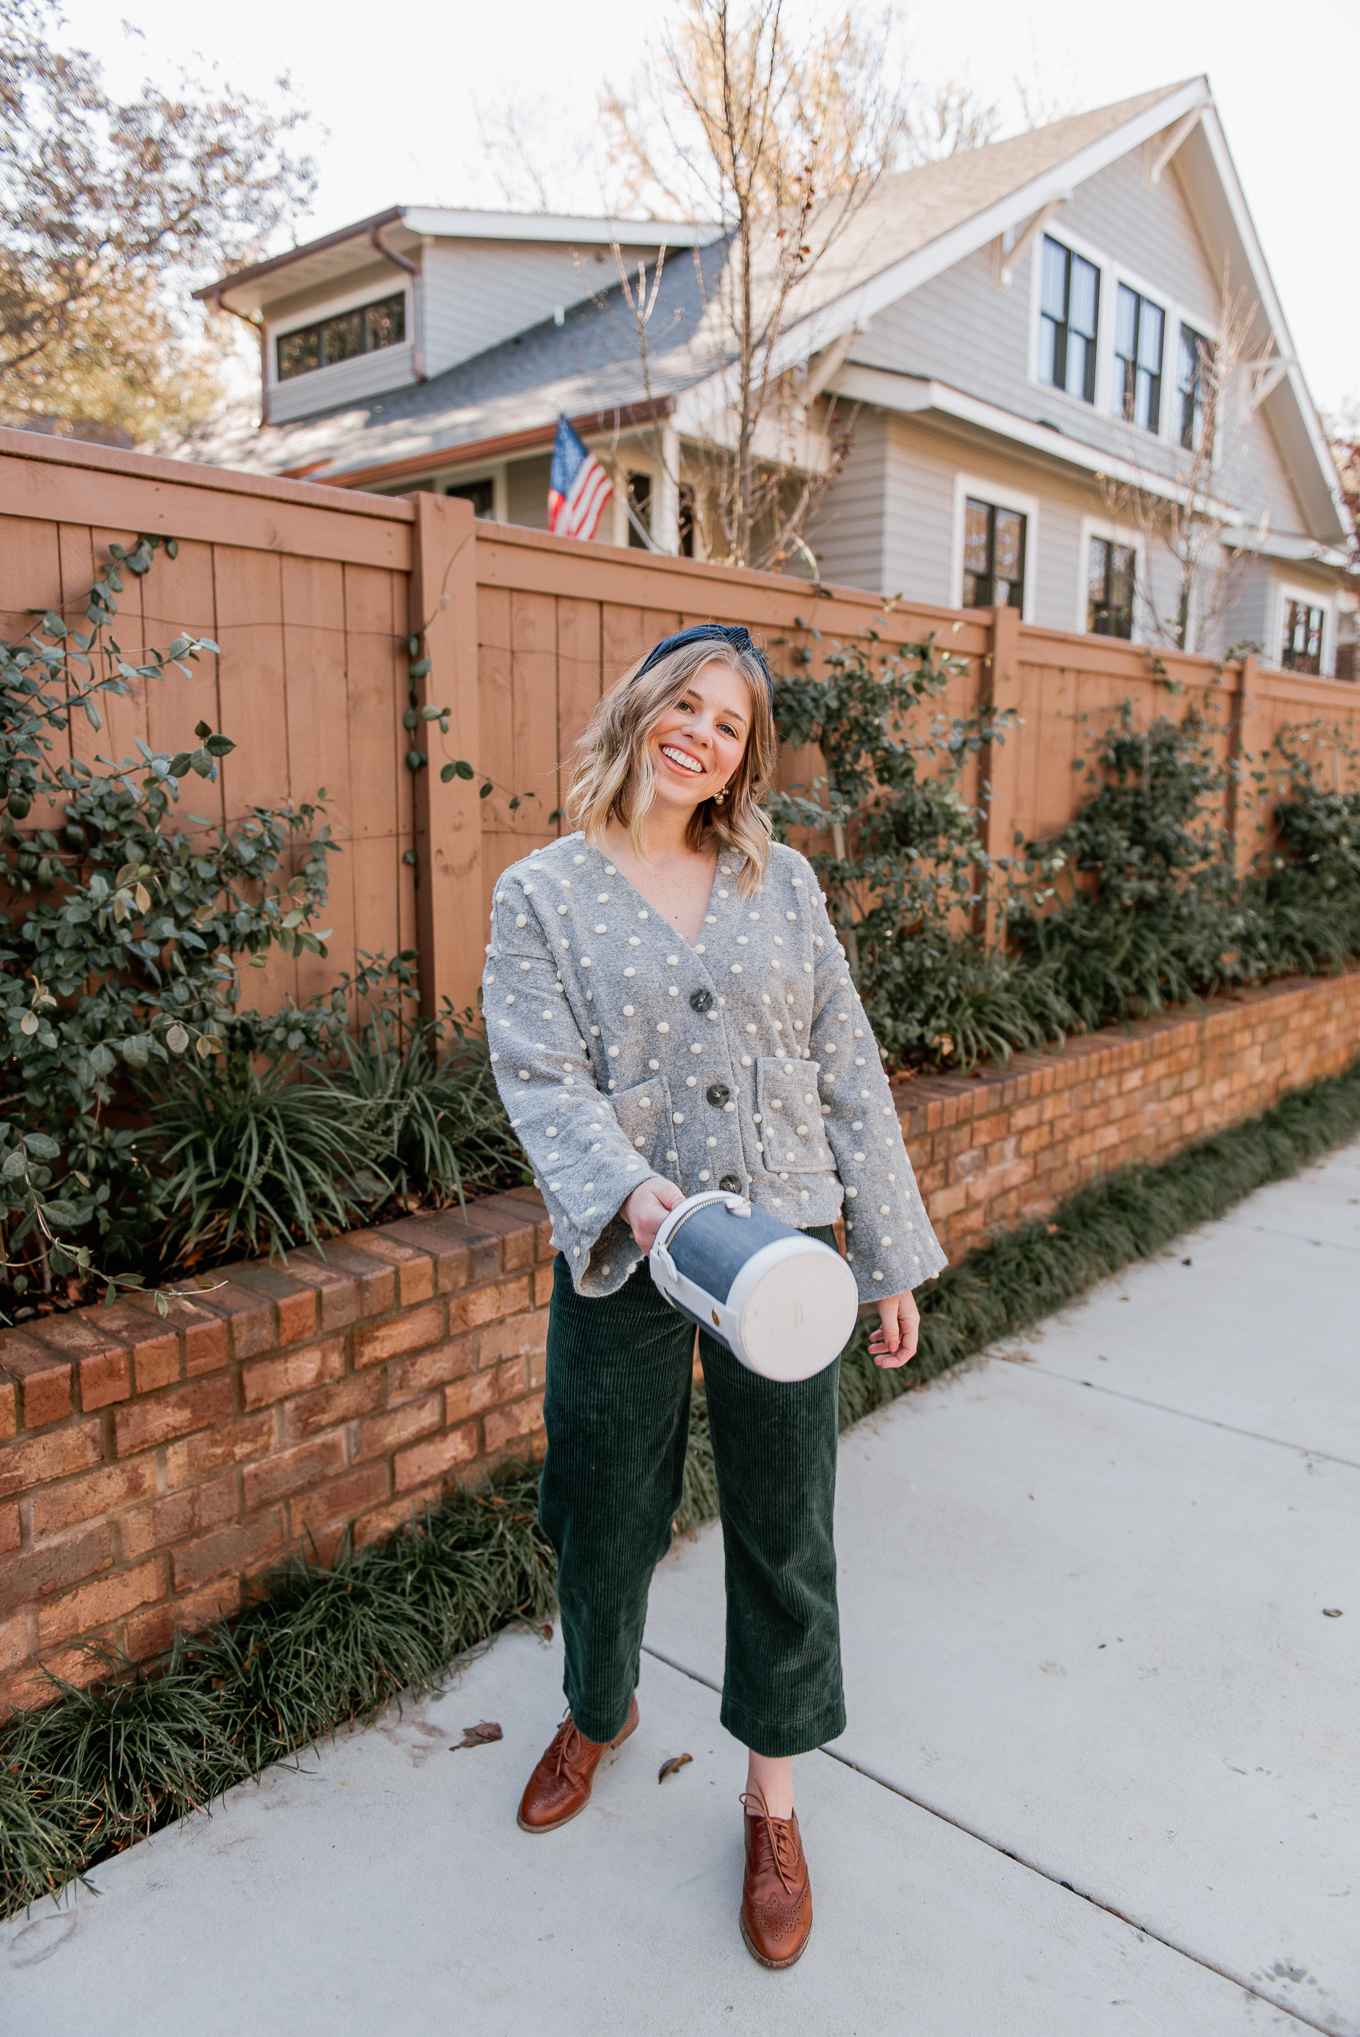 Polka Dot Sweater, Corduroy Wide Leg Crop Pants, Cognac Oxfords, Capsule Bag | Casual Winter to Spring Outfit Idea | Louella Reese